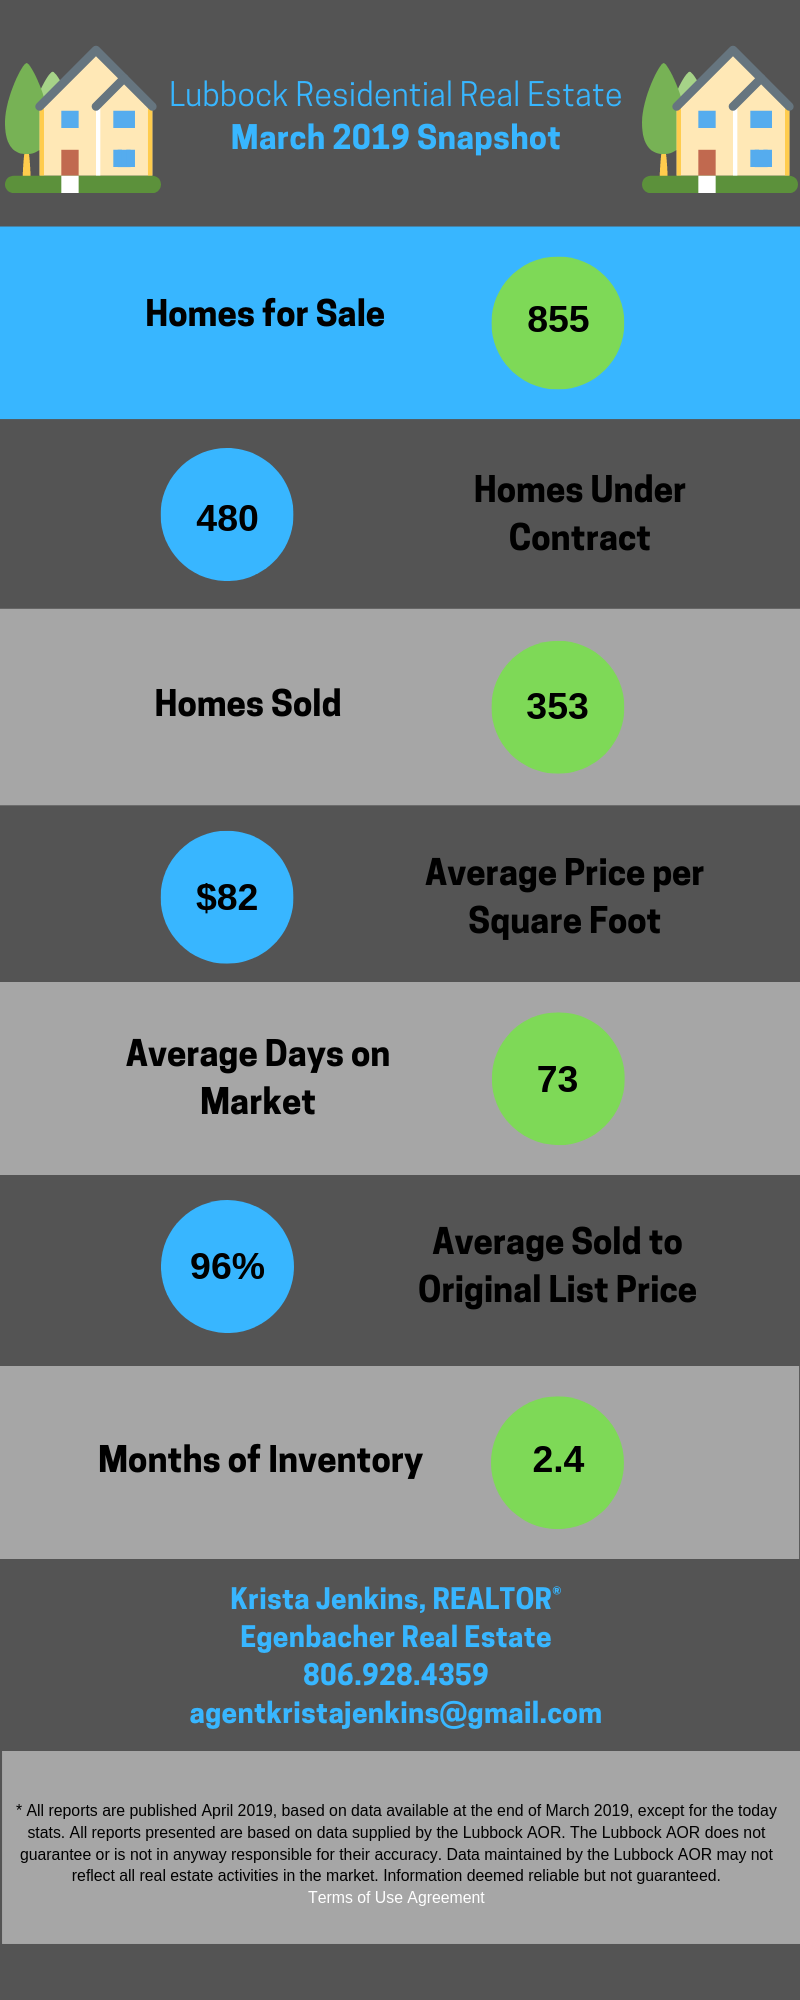 Lubbock Residential Real Estate March 2019 Snapshot